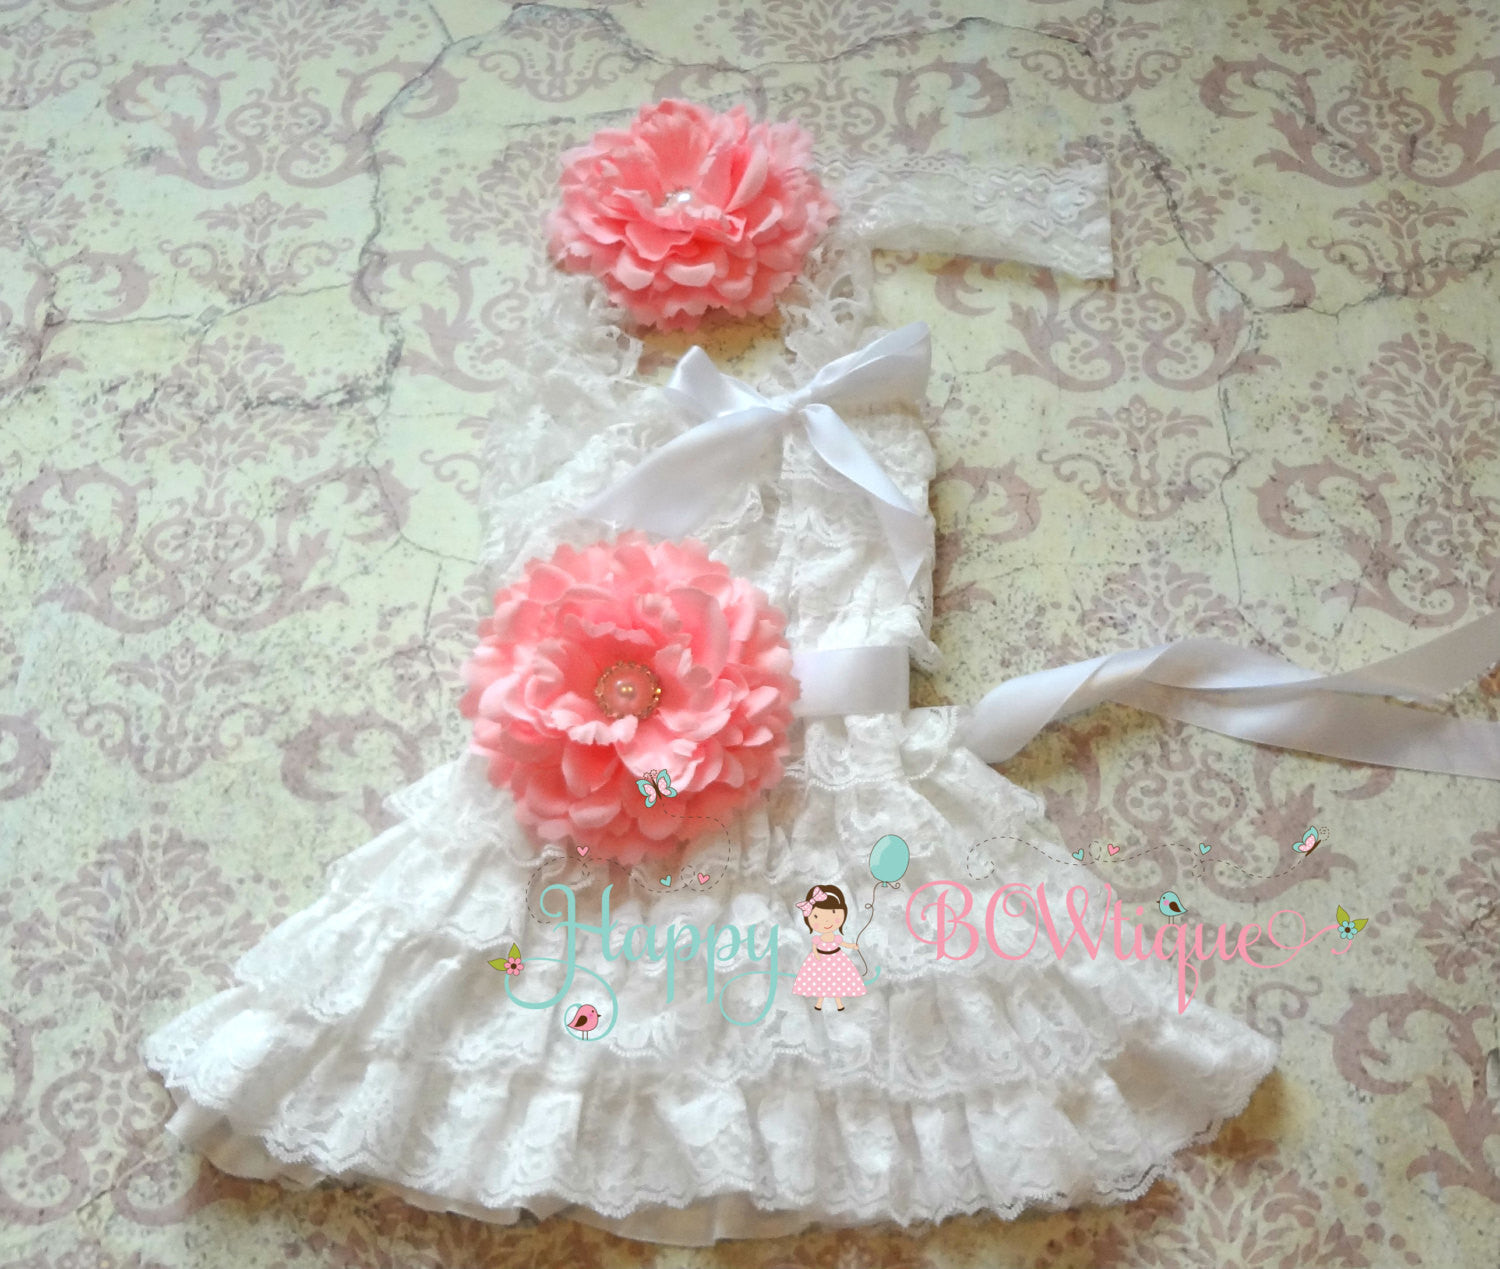 Girl's Petti Lace Dress/ Red Flower Girl's White Lace Dress set - Happy BOWtique - children's clothing, Baby Girl clothing